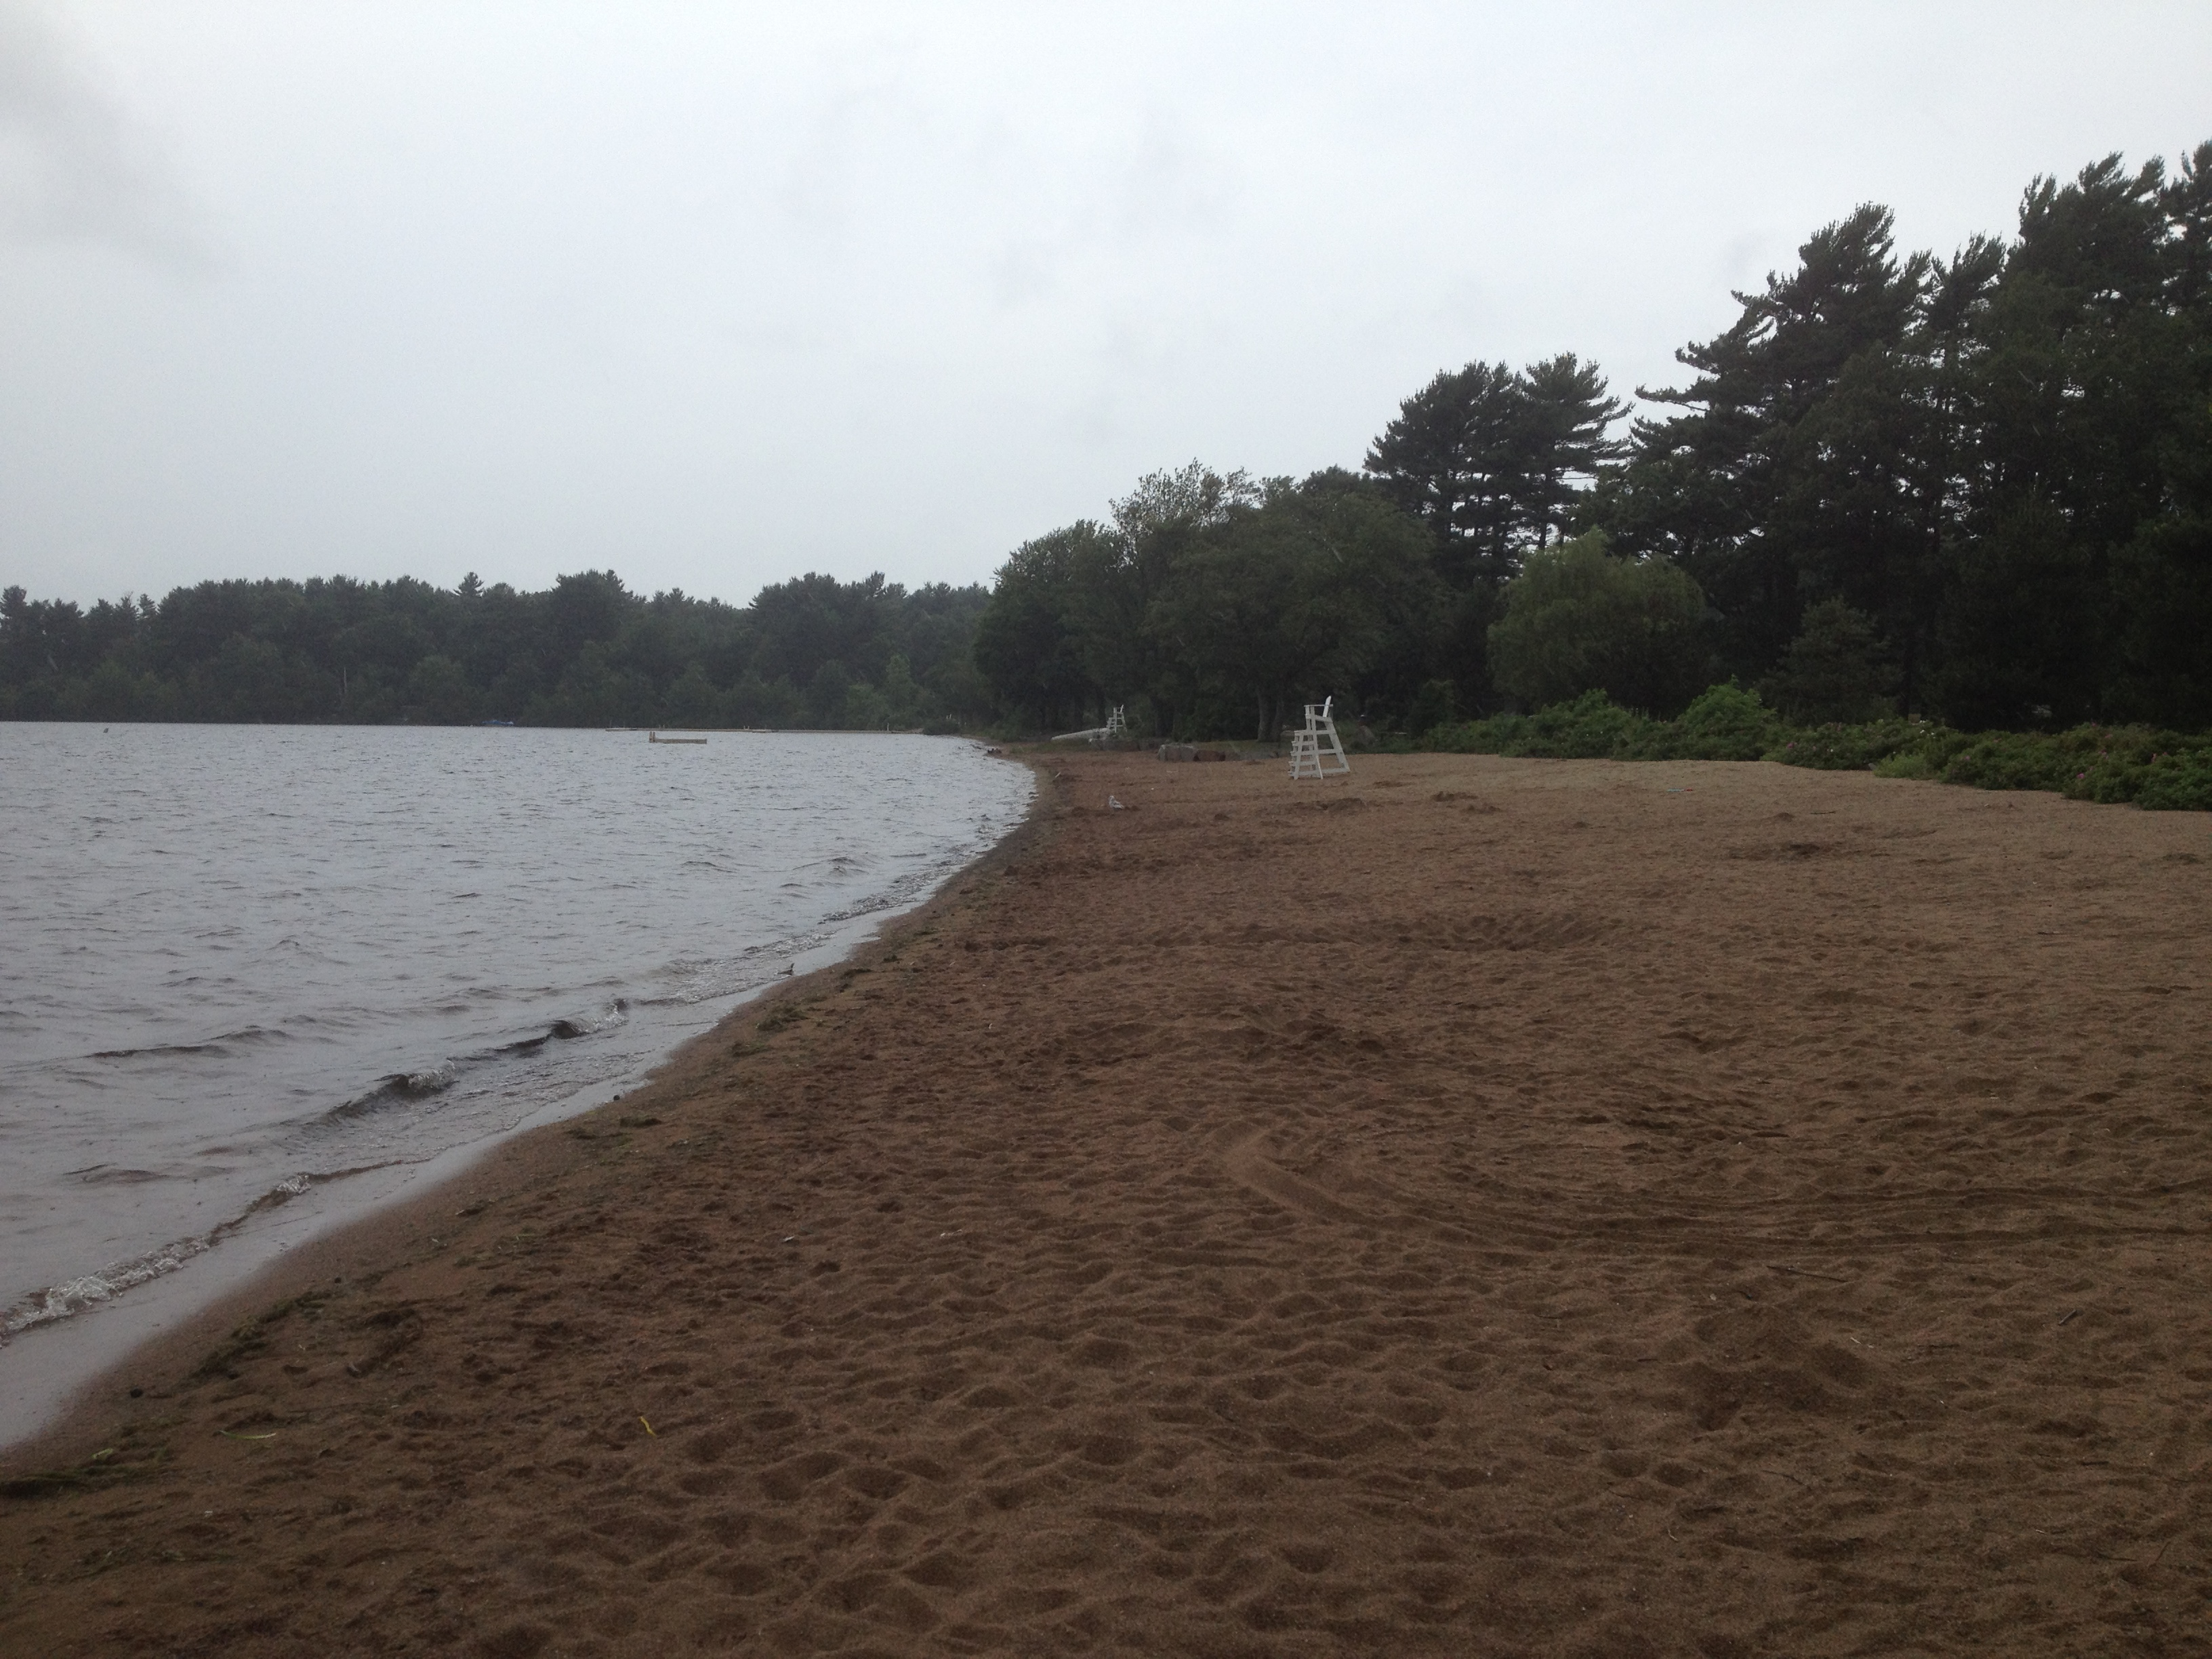 Memorial Beach on Mashapoag Lake